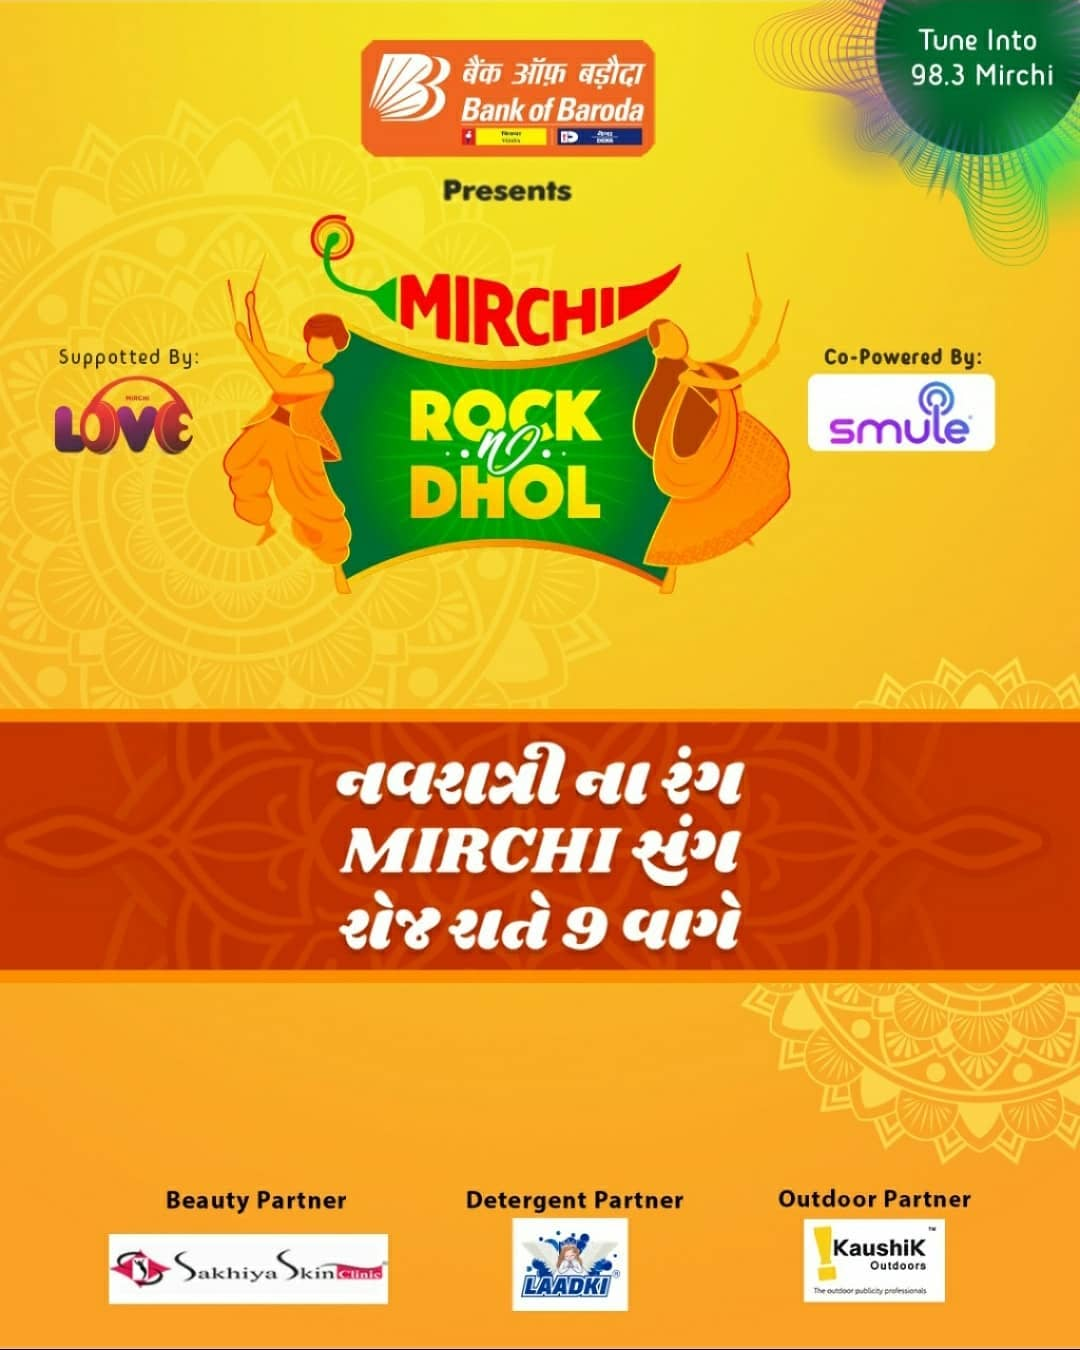 Tune in to Mirchi 98.3 everyday at 9 PM!  Mirchi Rock N Dhol Presented by @officialbankofbaroda Co powered by @smulein In association with  @laadki_detergent @sakhiyaskinclinic   #rjdhvanit #dhvanit #rockndhol  #RadioMirchi #MirchiGujarati #gujarat #garba #raas #ahmedabad #surat #baroda #rajkot #vadodara